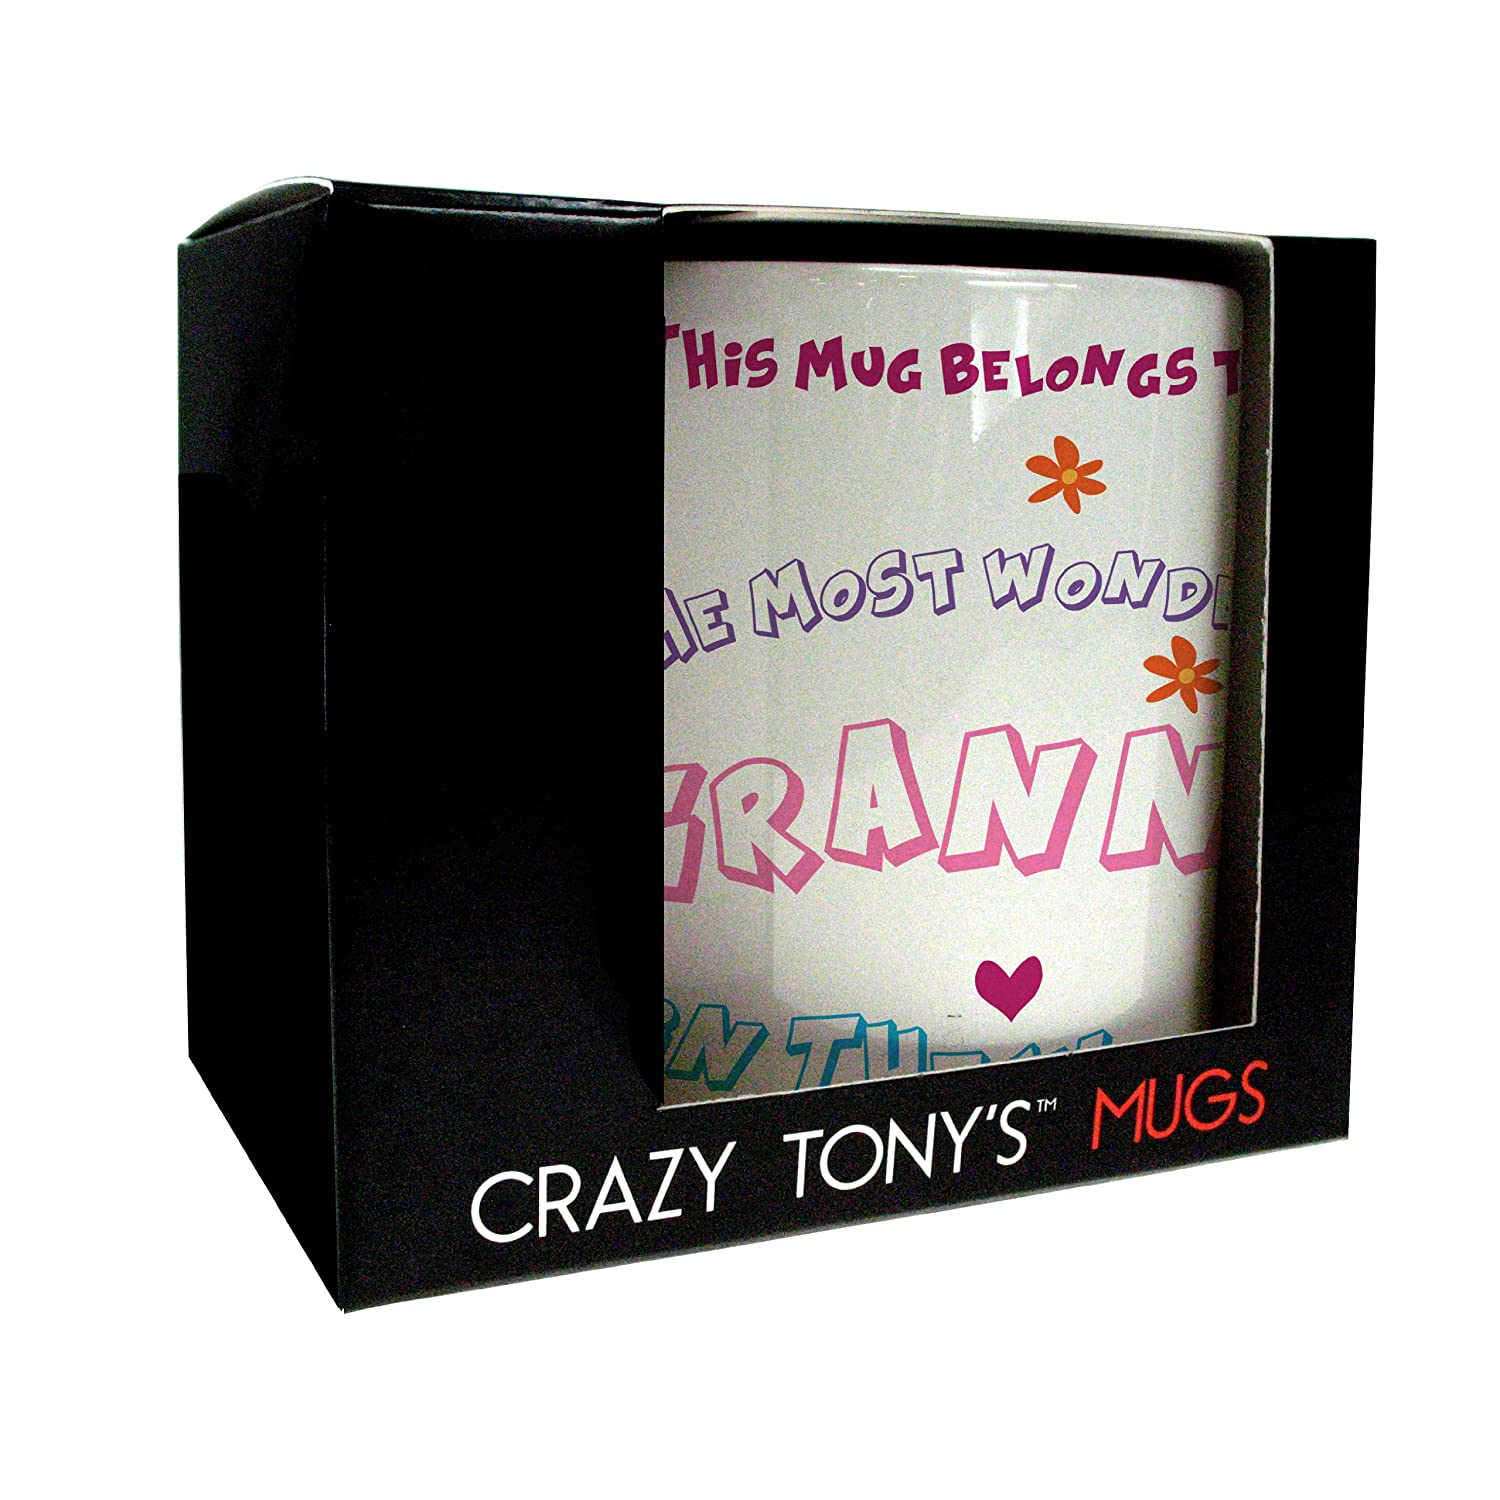 Personalised Best Granny In The World Mug, Crazy Tony's Best Granny Mug, Gifts For Her, Gifts For Granny, Personalised Gifts For Grannies: Amazon.ca: Home & ...